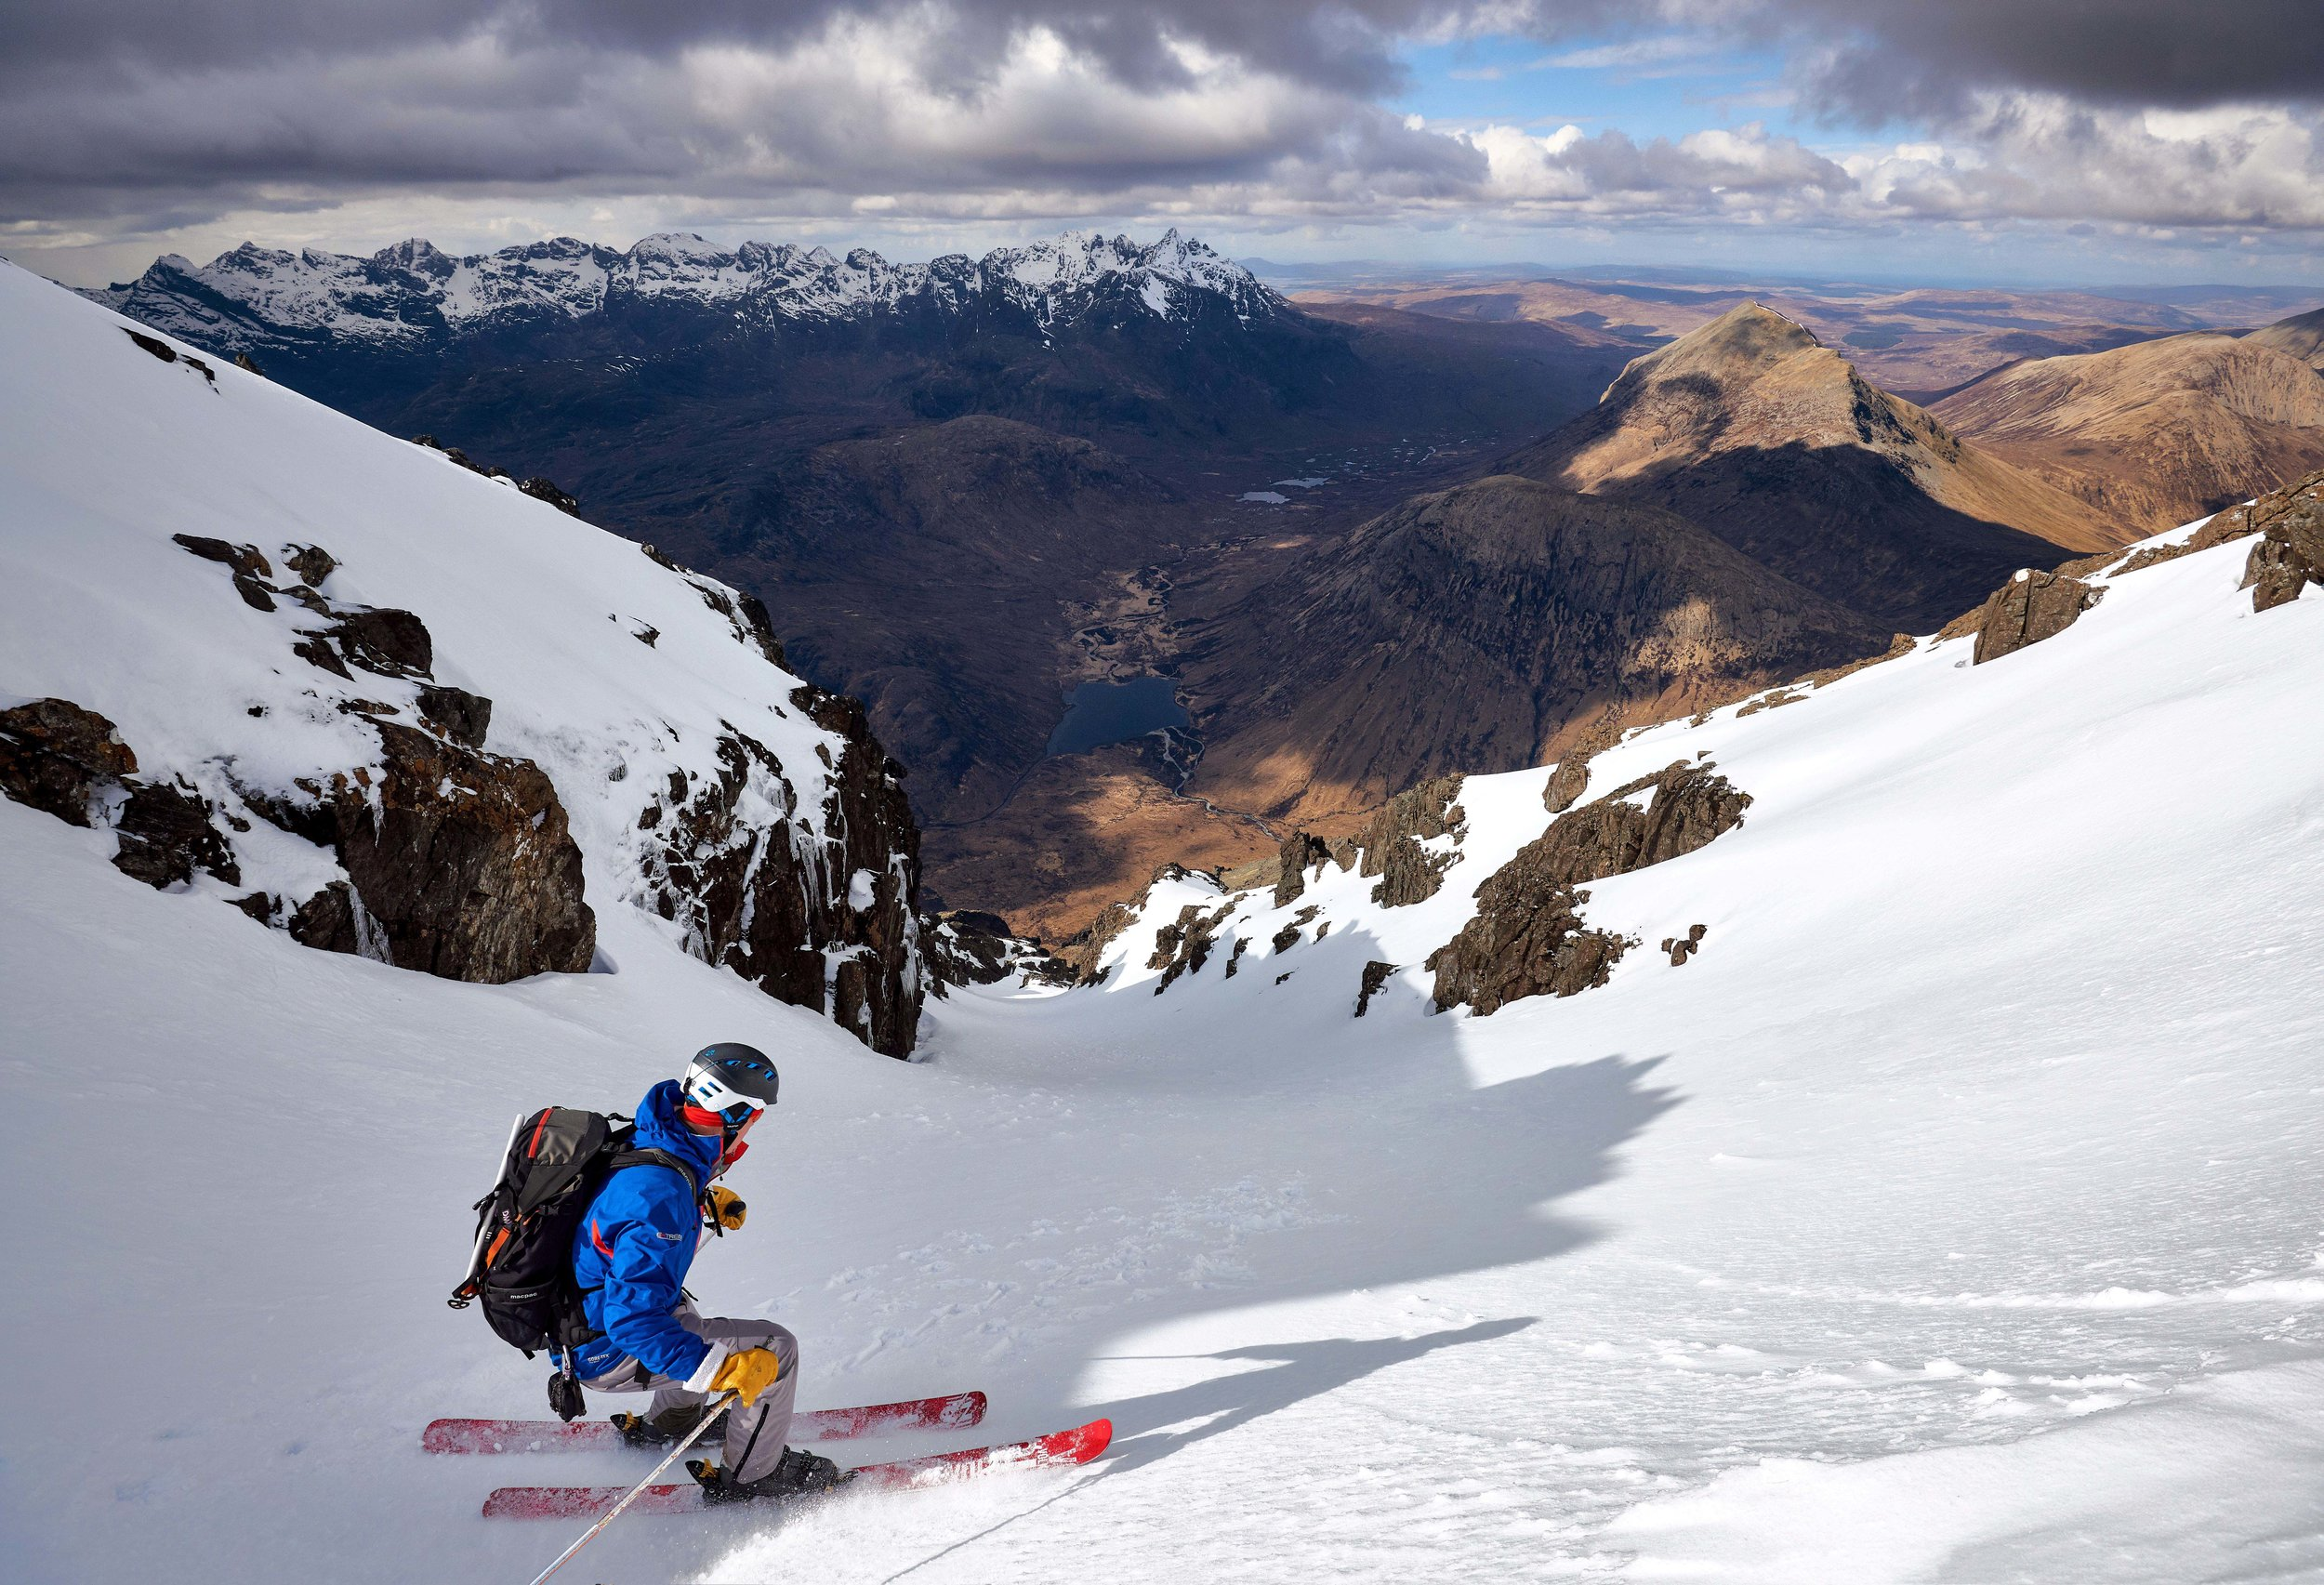 Skiing off the col into the stunningly situated Willink's Gully, a superbly situated line running down the west side of the mountain offering some impressive views out to Sgùrr nan Gillean and the northern half of the Cuillin ridge.